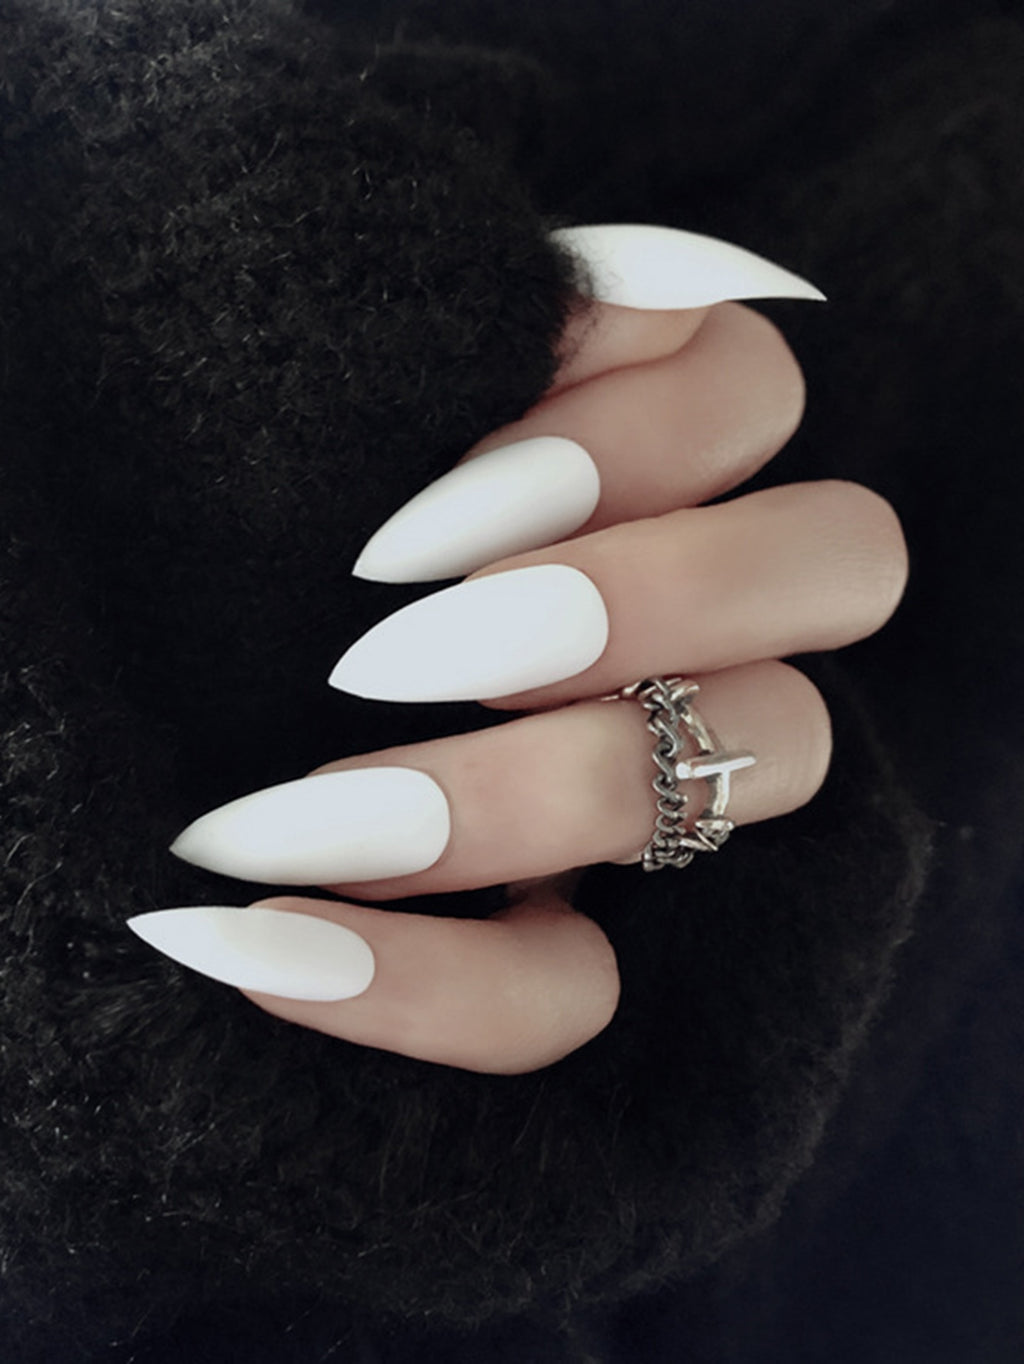 Stiletto MILKY WHITE Press On Set Nail 24pcs With Tape